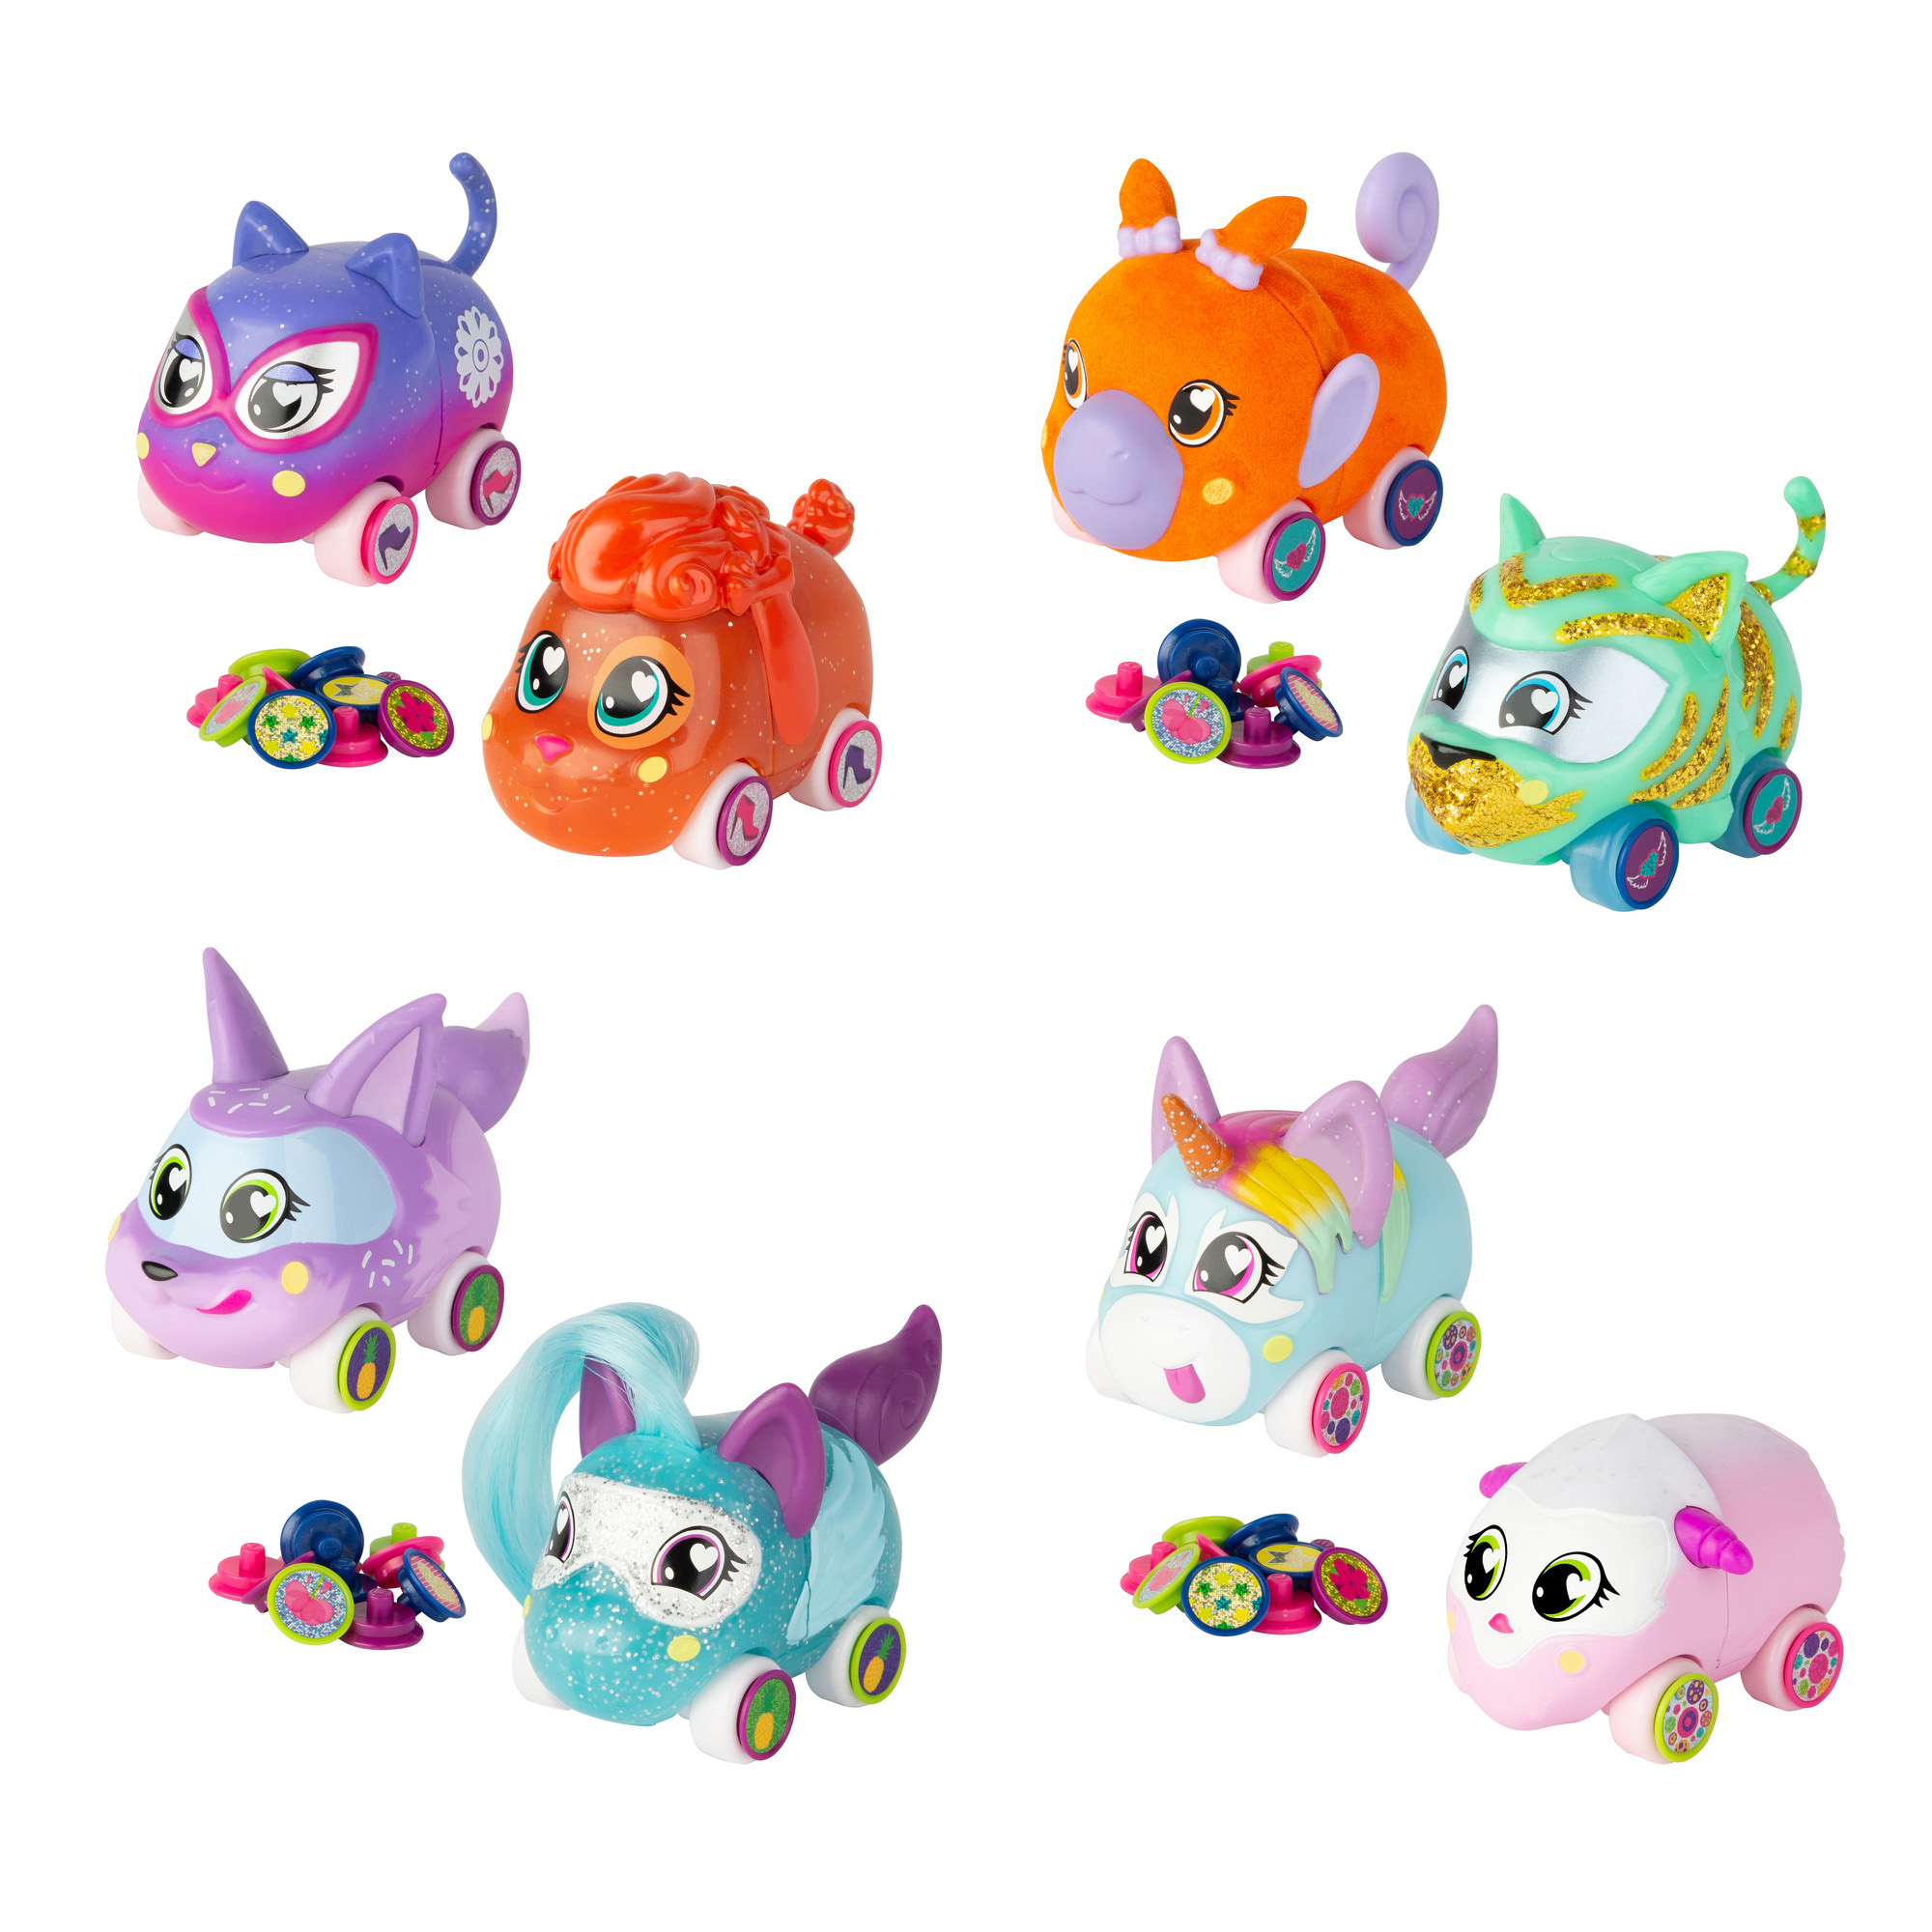 TOMY Ritzy Rollerz Besties Assortment